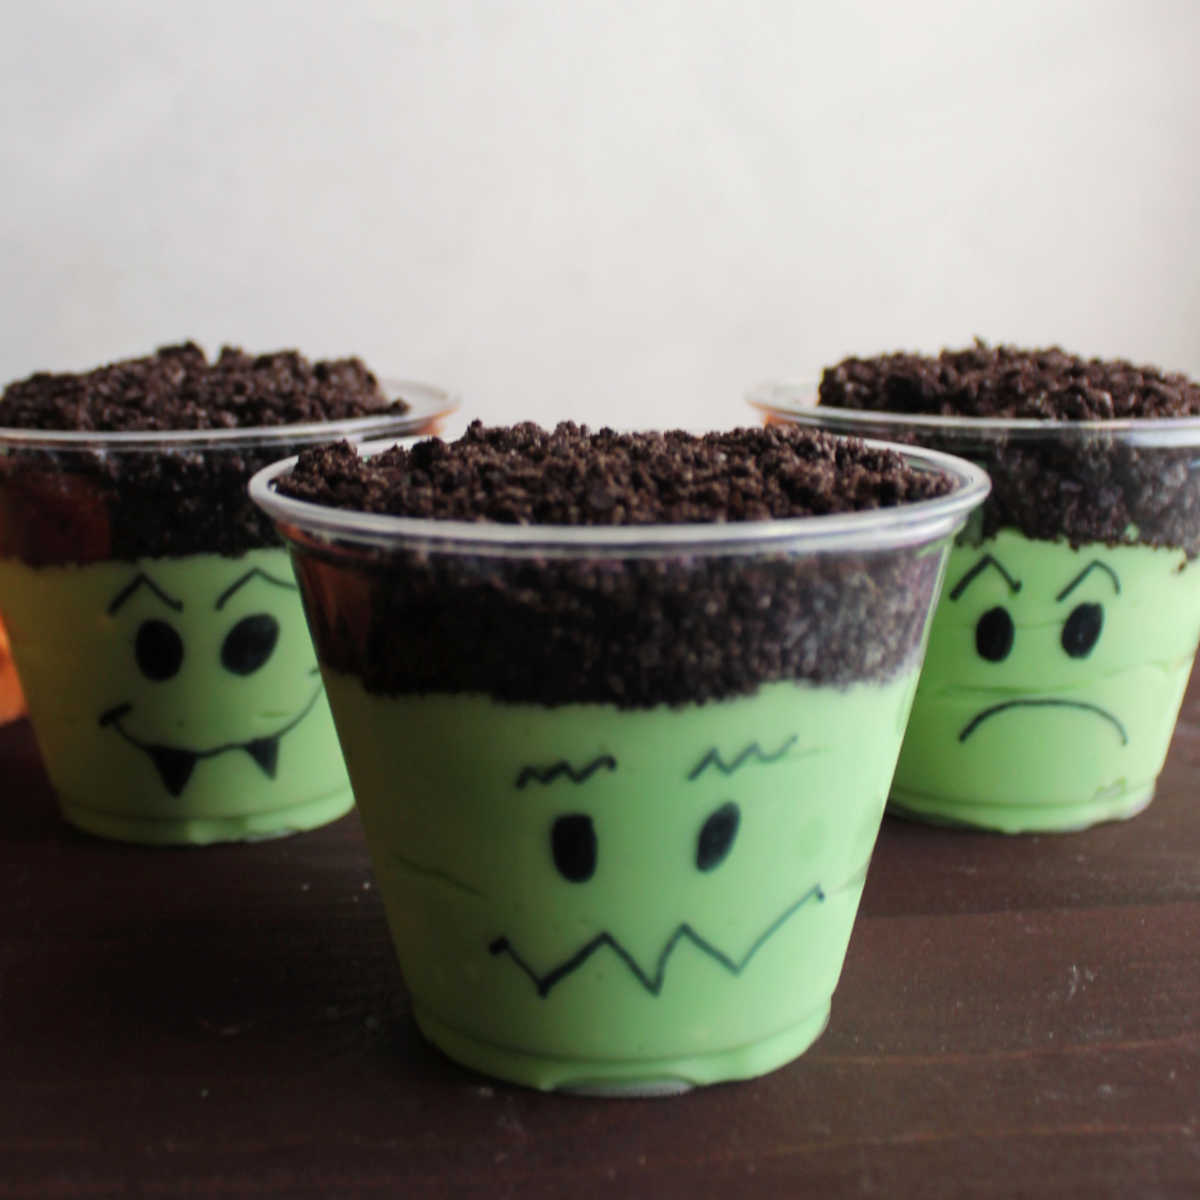 Three pudding cups with green pudding mixture and chocolate cookie crumb topping with faces drawn on them to look like Frankenstein.